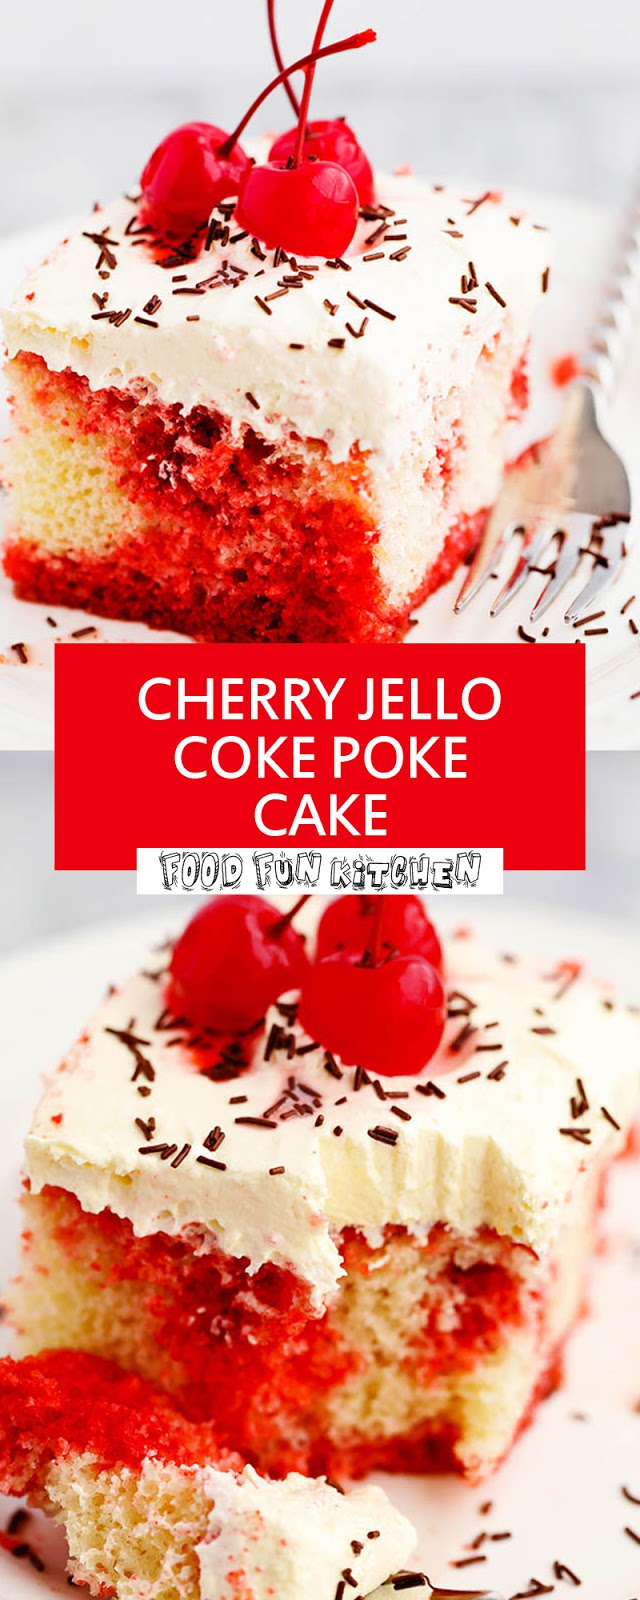 CHERRY JELLO COKE POKE CAKE